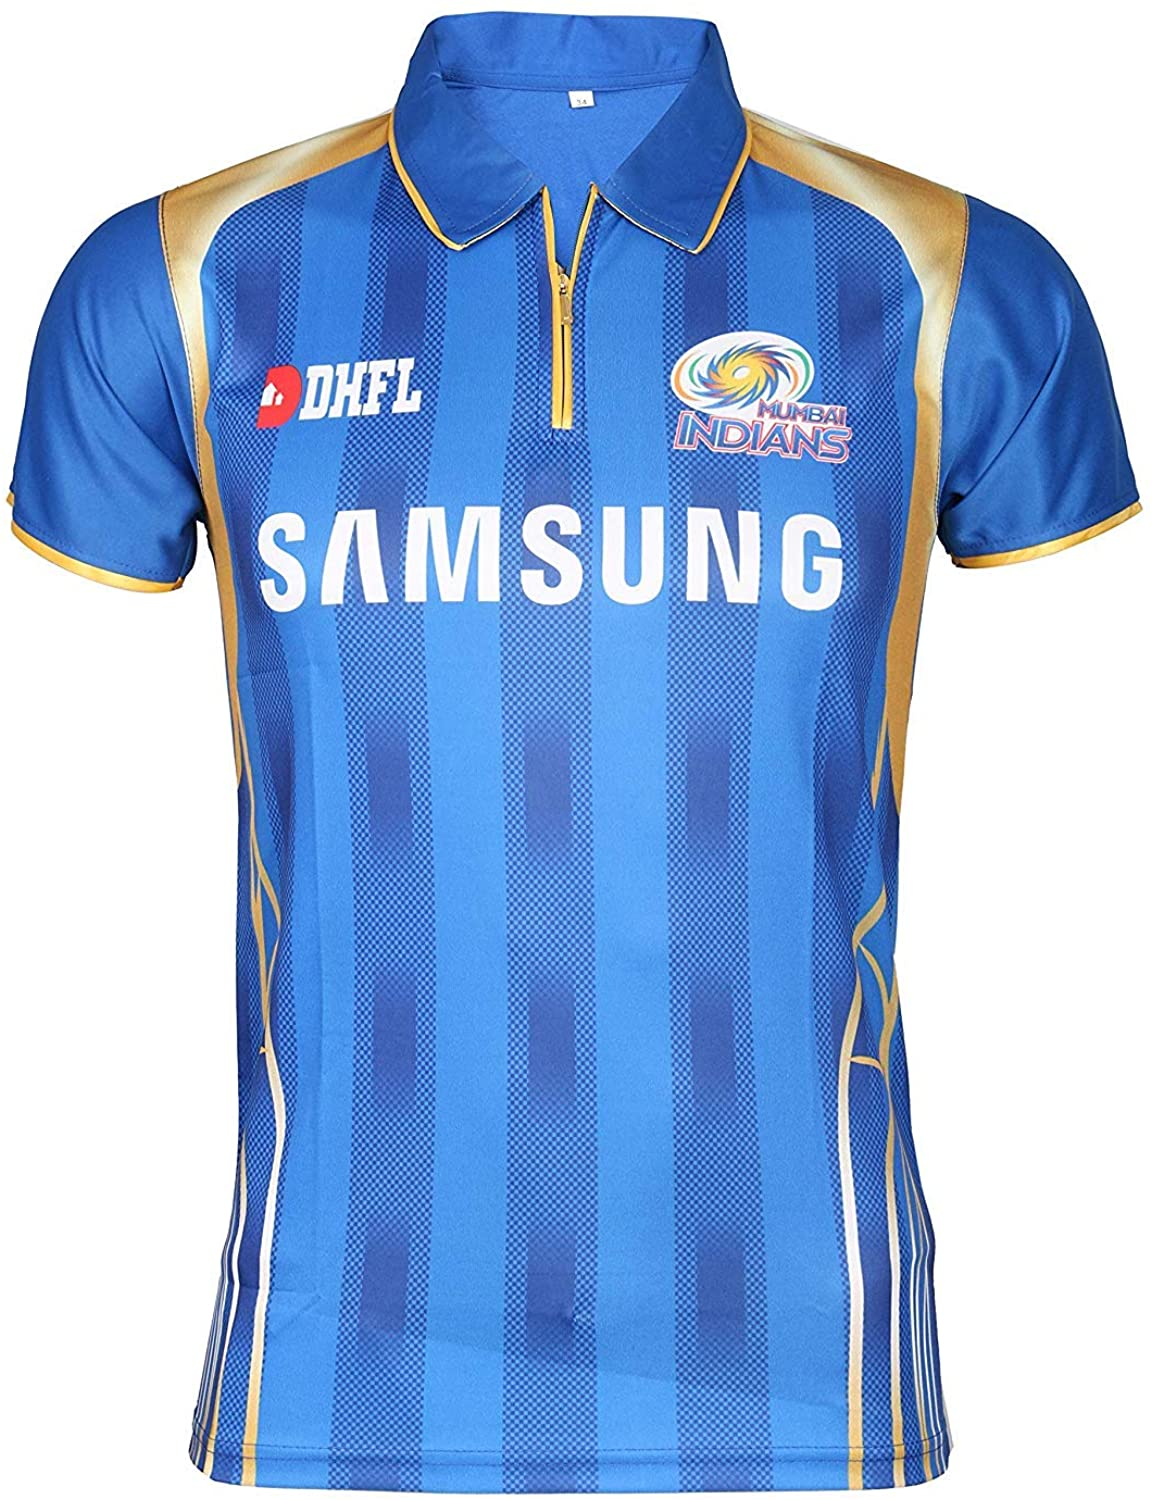 KD Cricket IPL Custom Jersey Supporter Jersey T-Shirt 2020 with Your Choice Name and Number Print (MI,36)